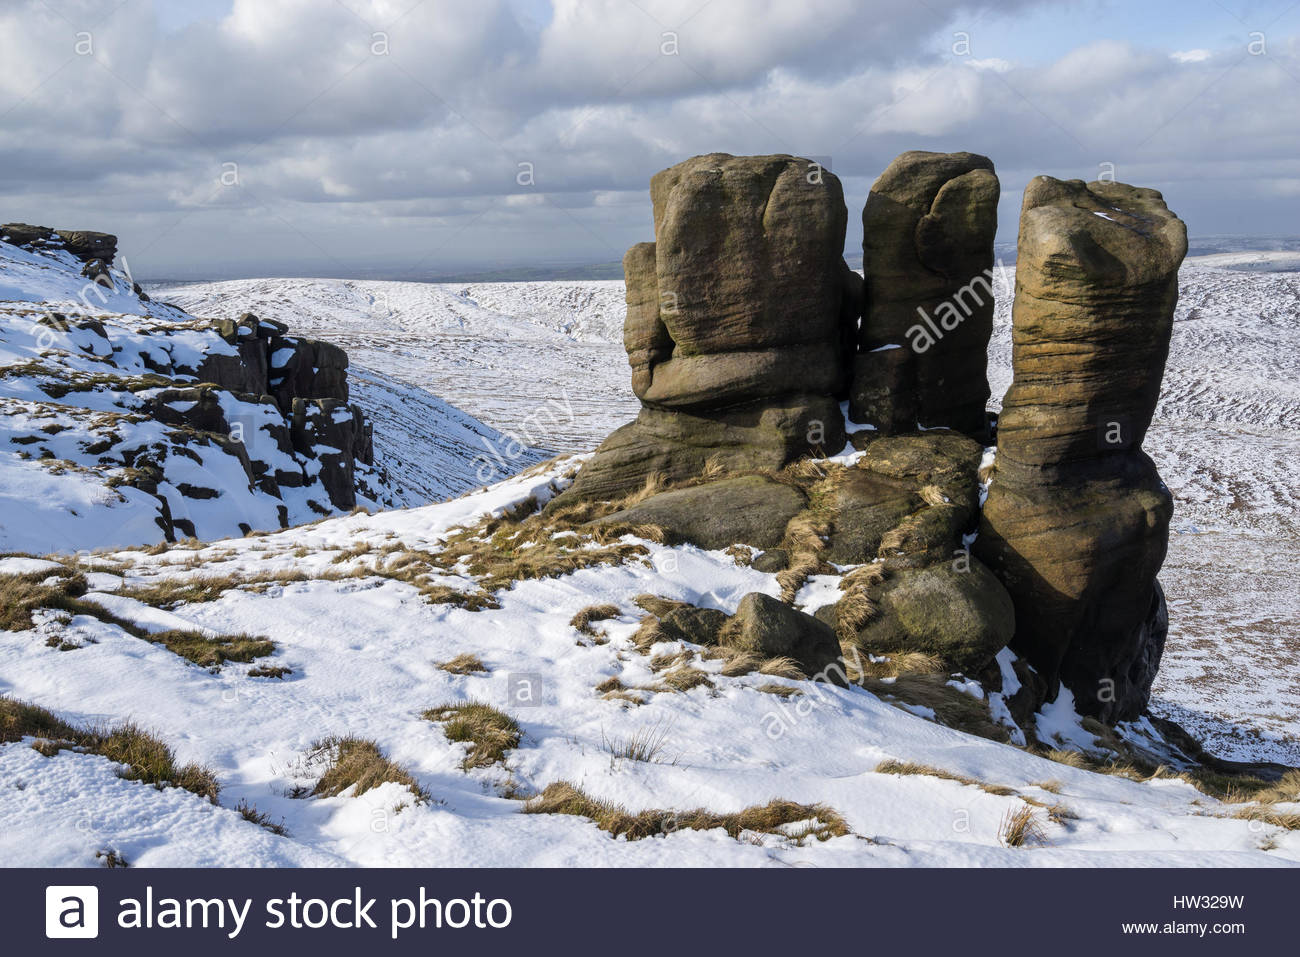 After a poor winter for the 2016/2017 season, I jumped at the chance to head up Kinder Scout for some late snow - Stock Image